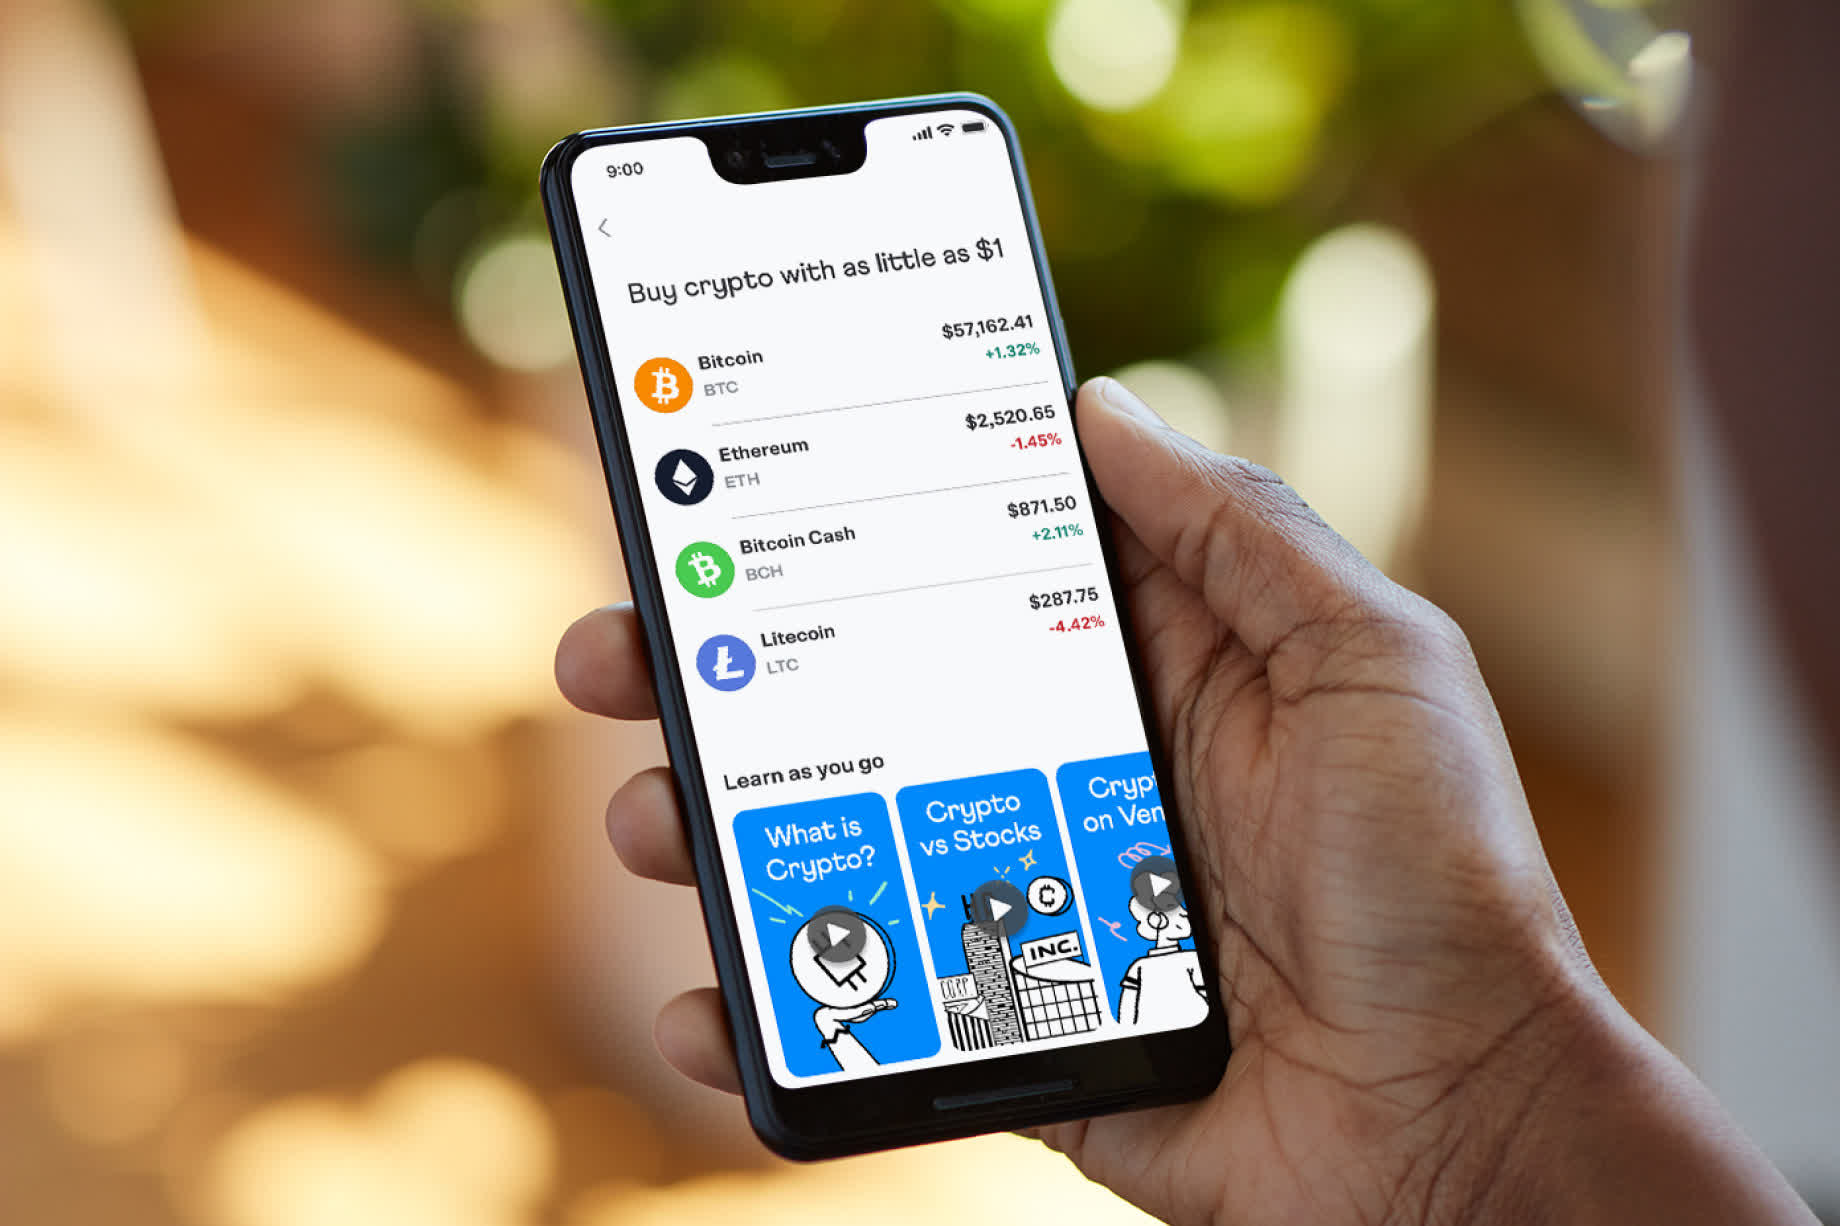 Venmo users can now buy, hold, and sell four types of cryptocurrencies